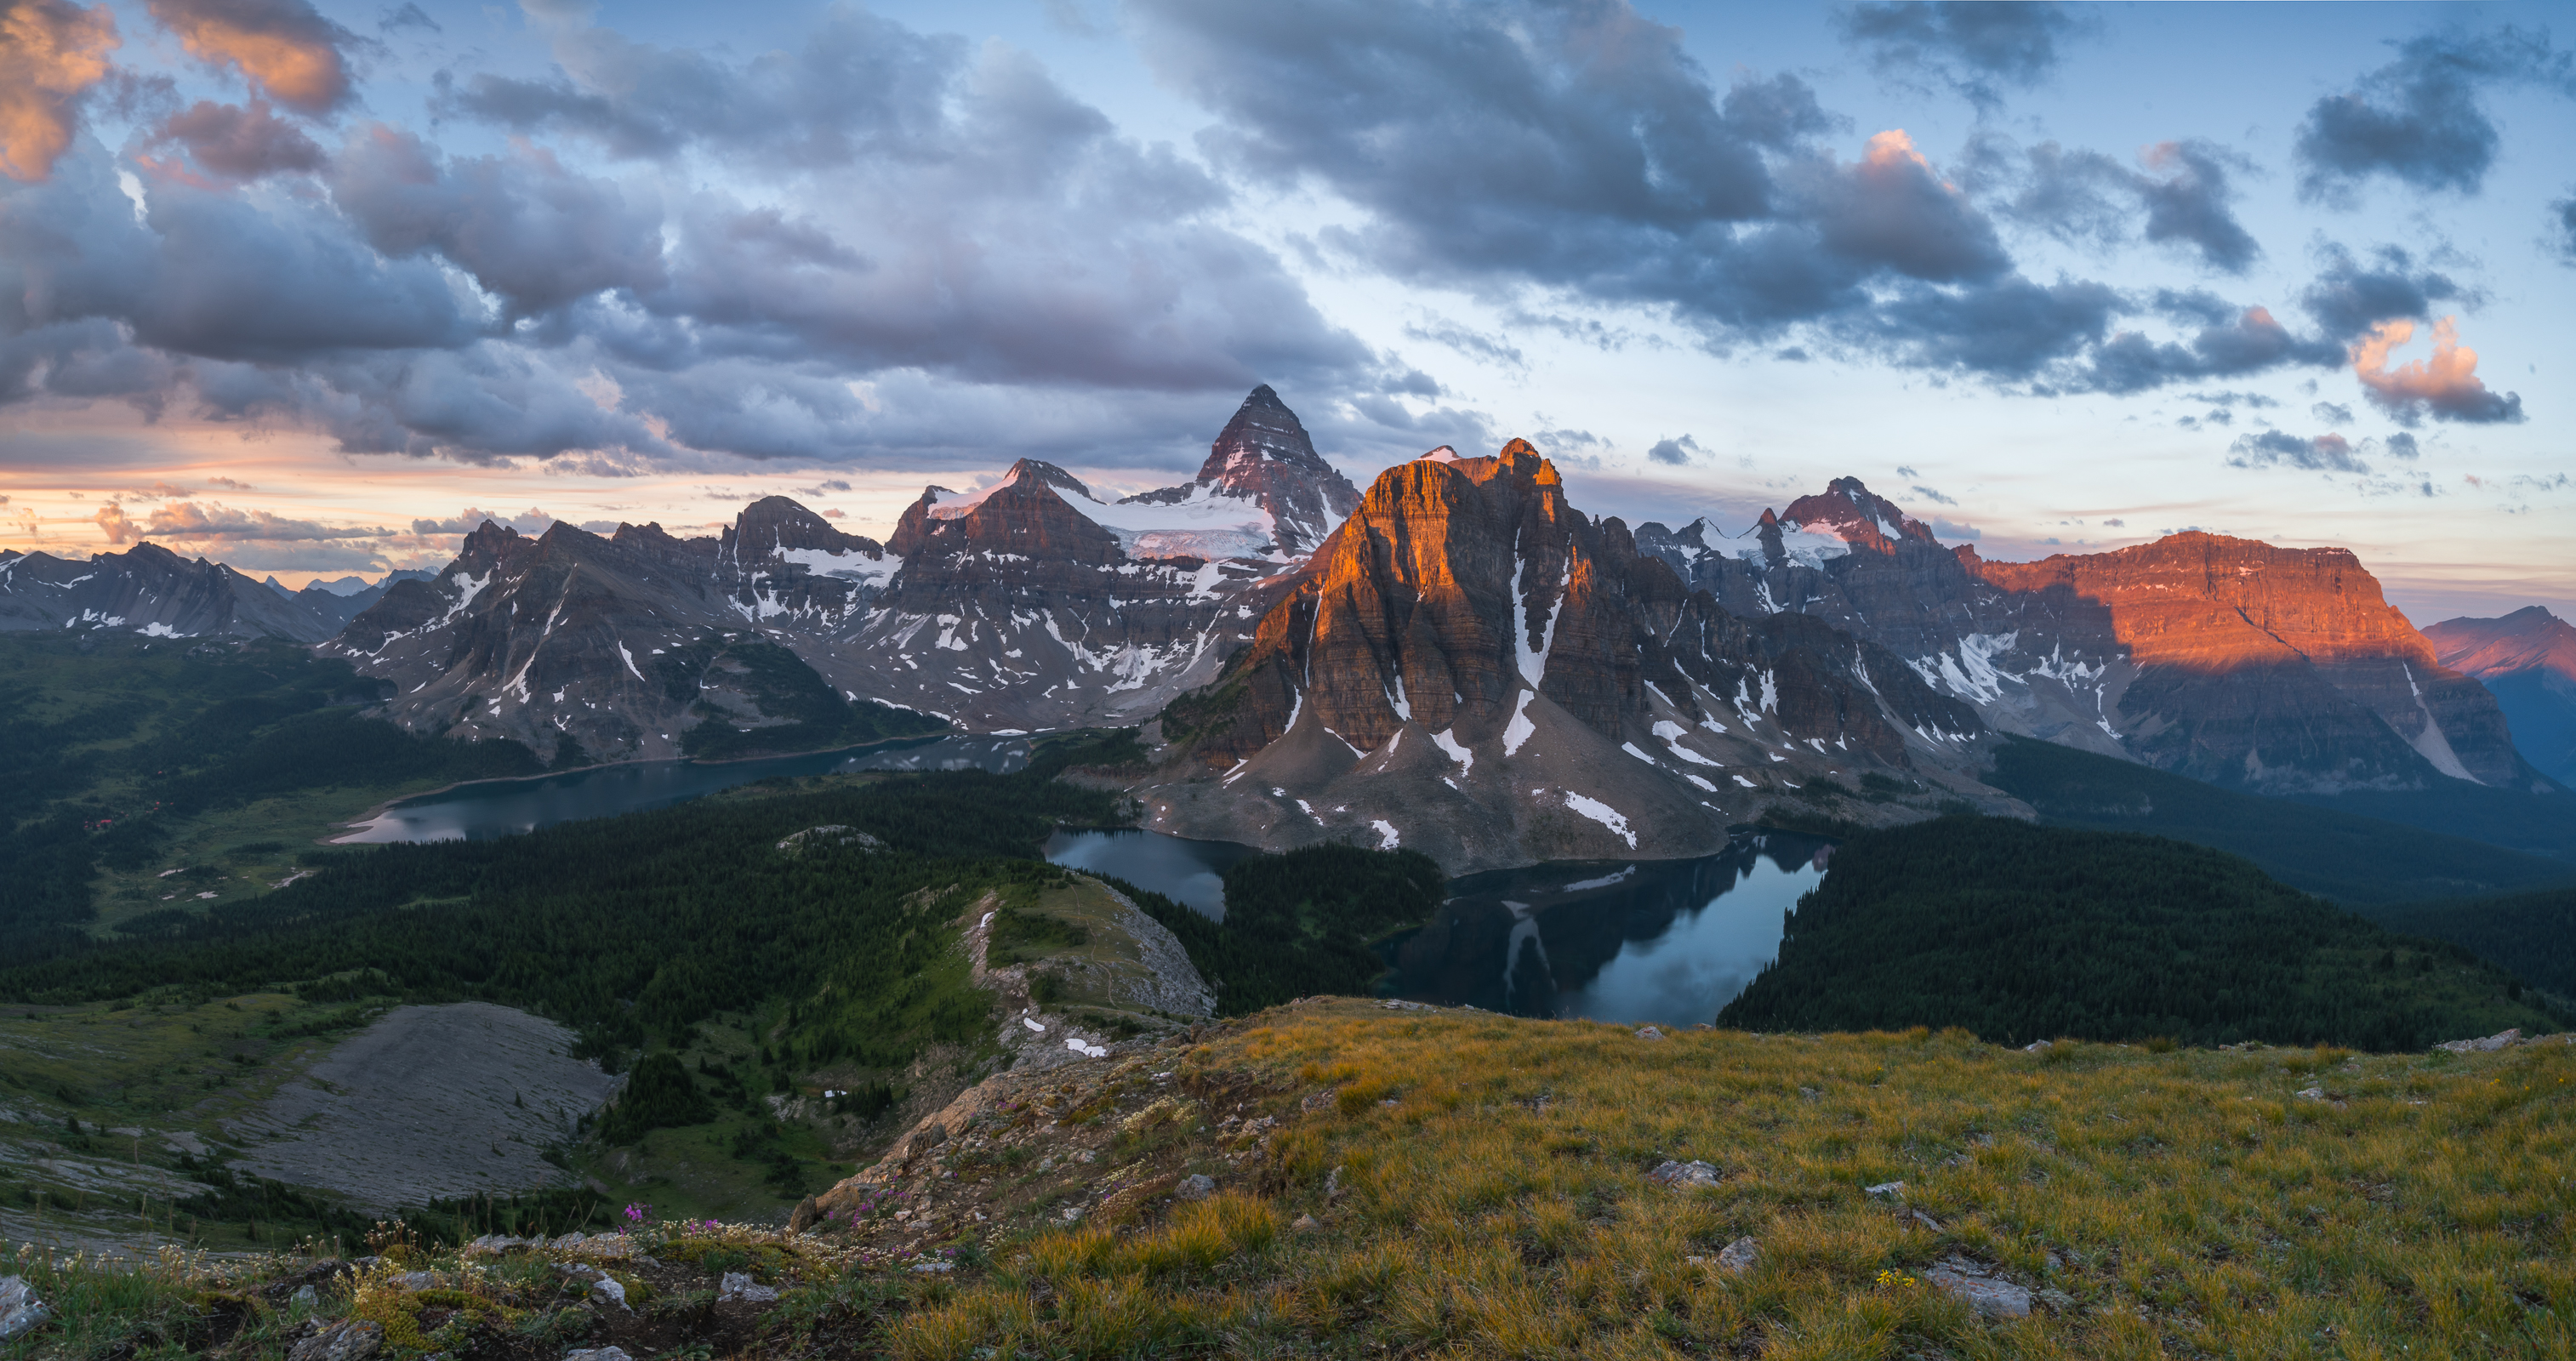 Assiniboine-Sunrise-Pano.jpg